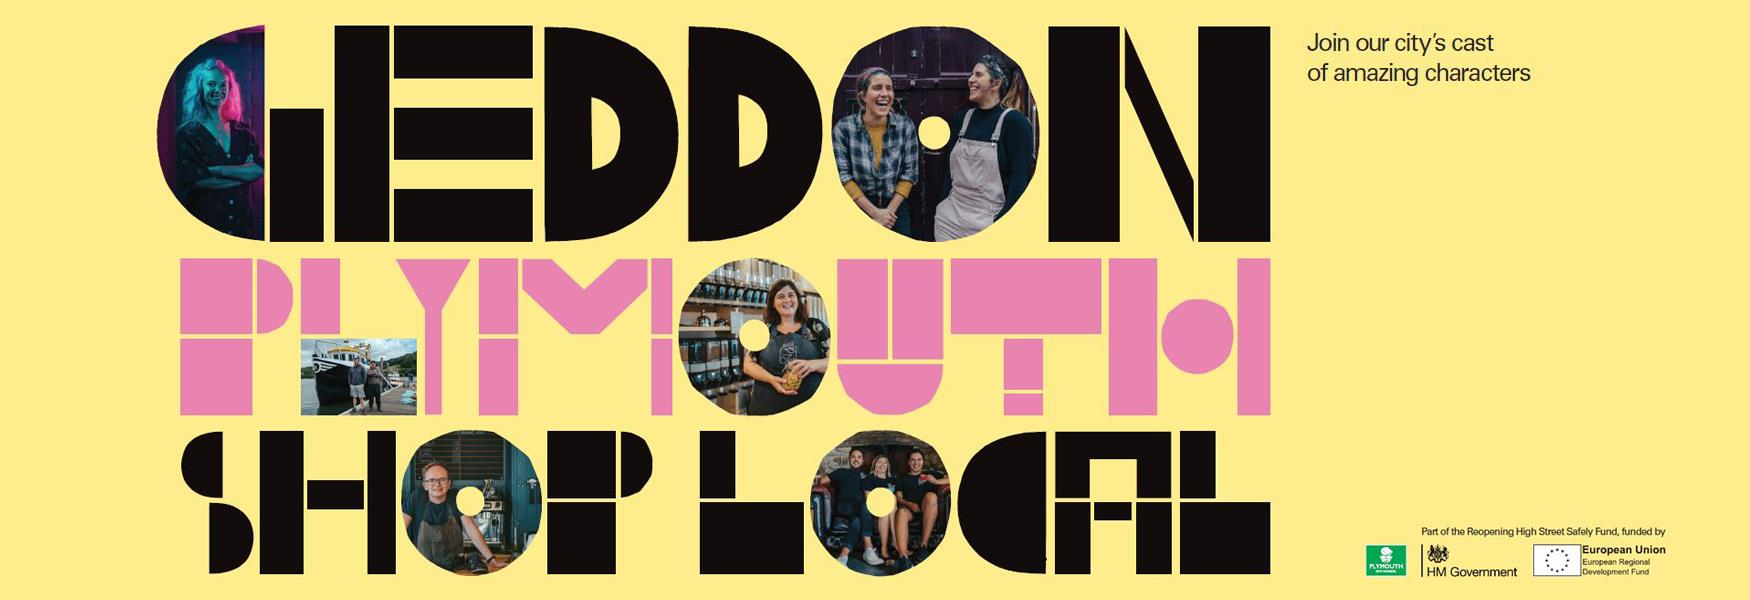 Geddon Plymouth Shop Local - Join our city's cast of amazing characters